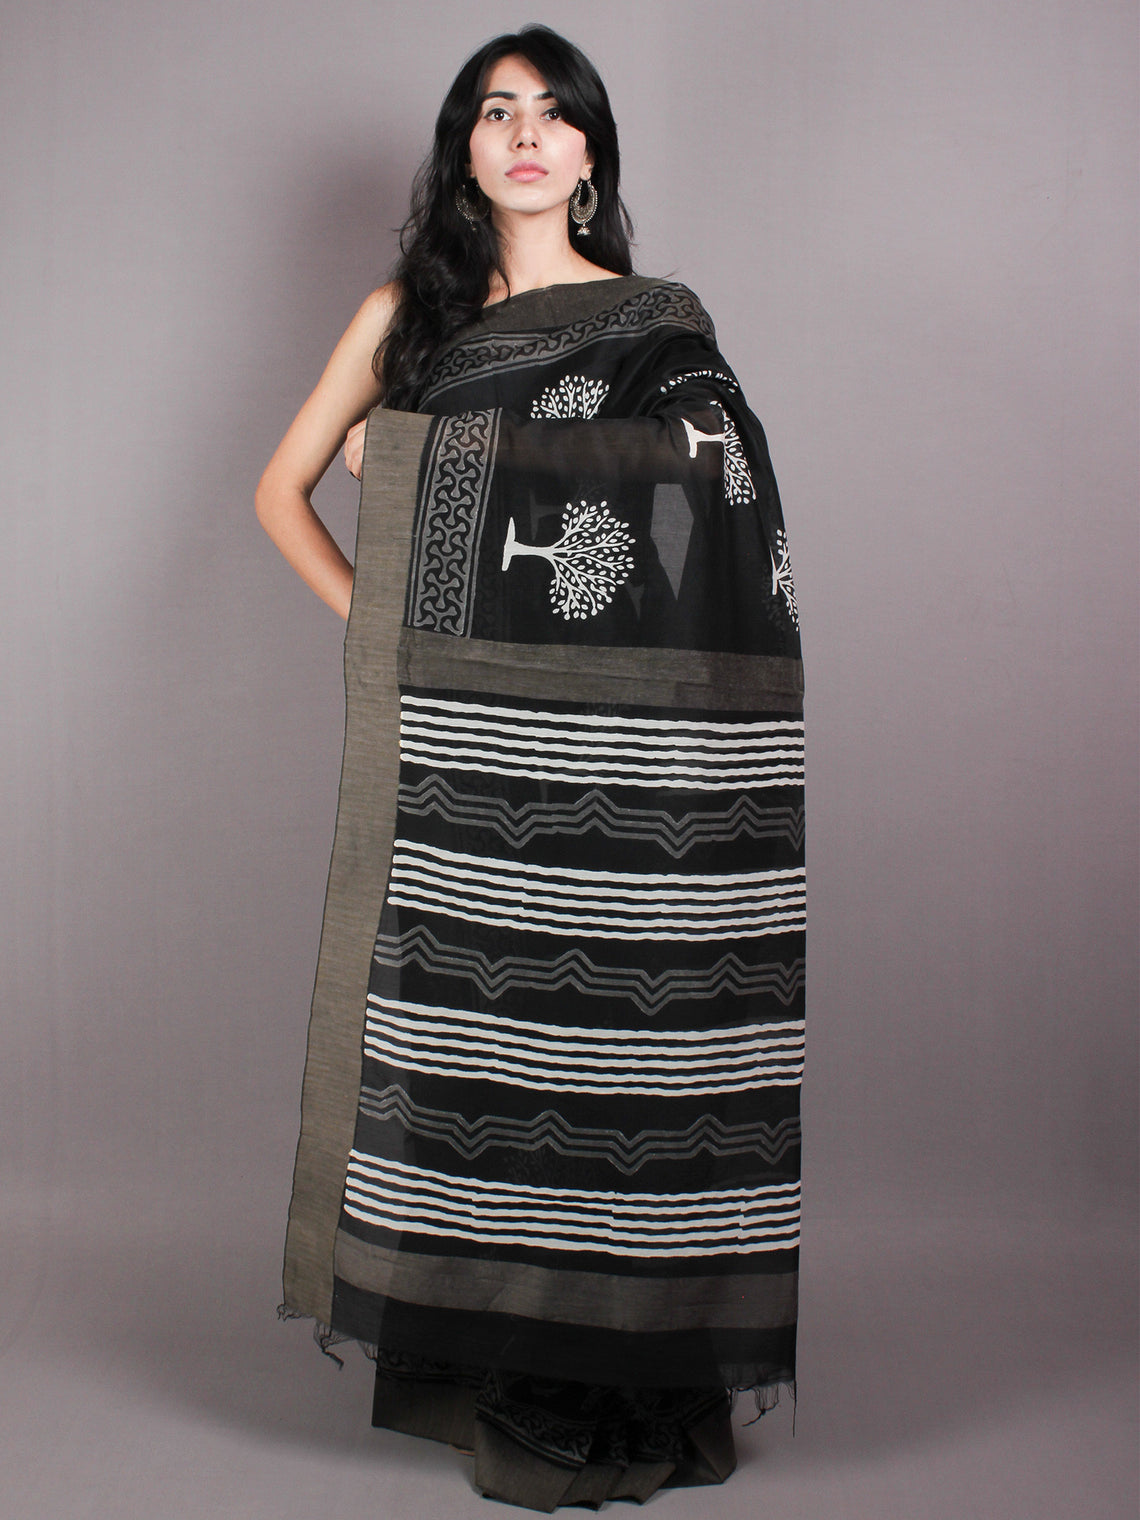 Black White Hand Block Printed in Natural Vegetable Colors Chanderi Saree With Geecha Border - S03170374